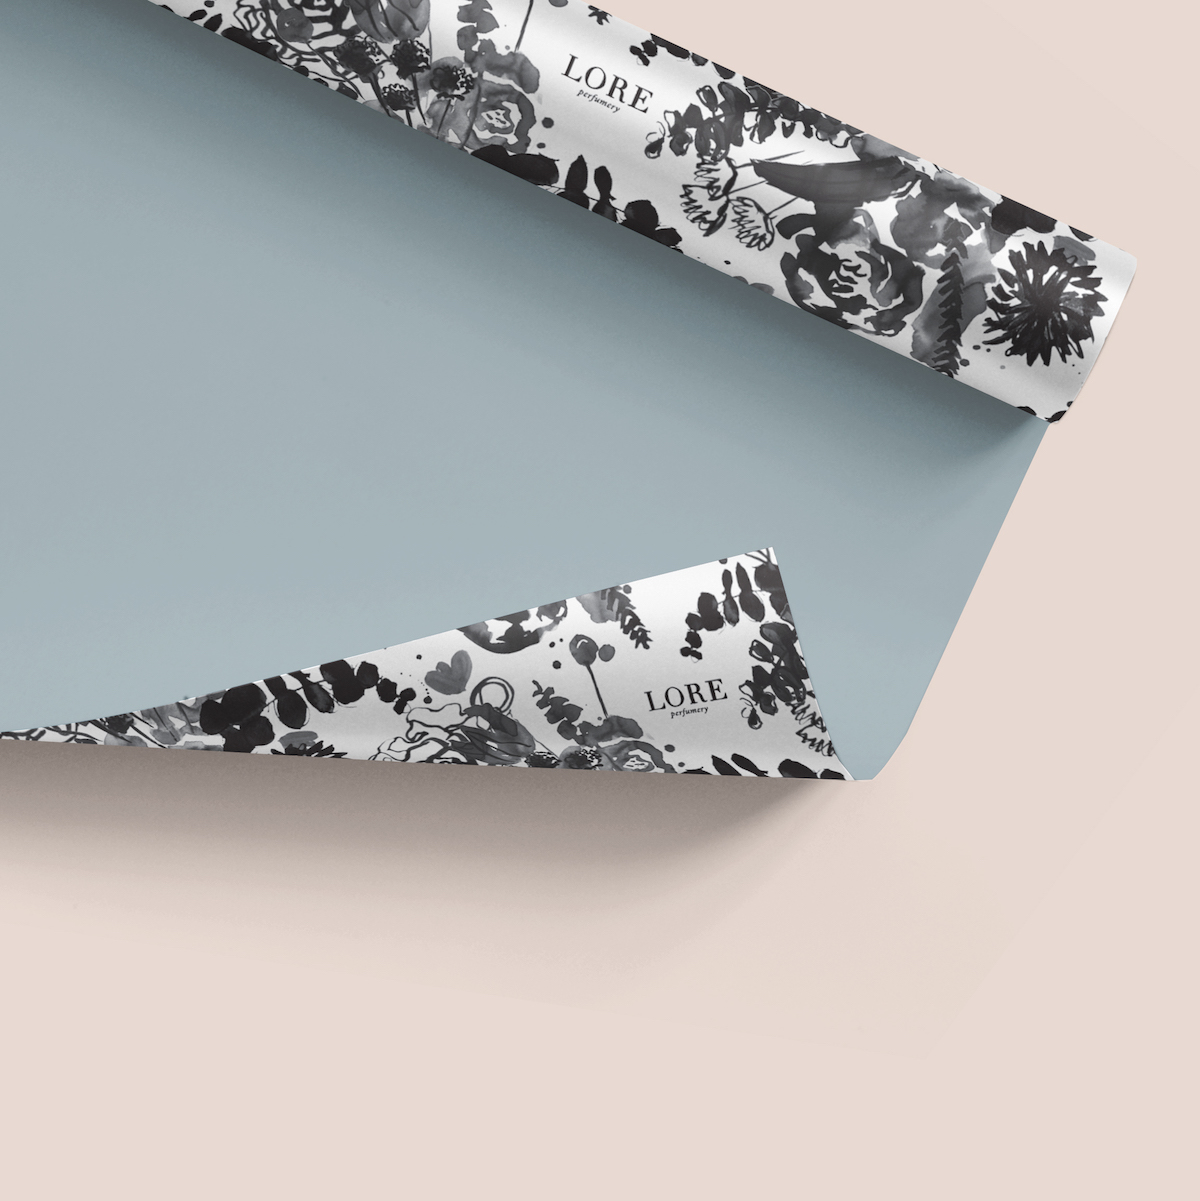 LORE_Gift Wrapping Paper MockUp final.jpg